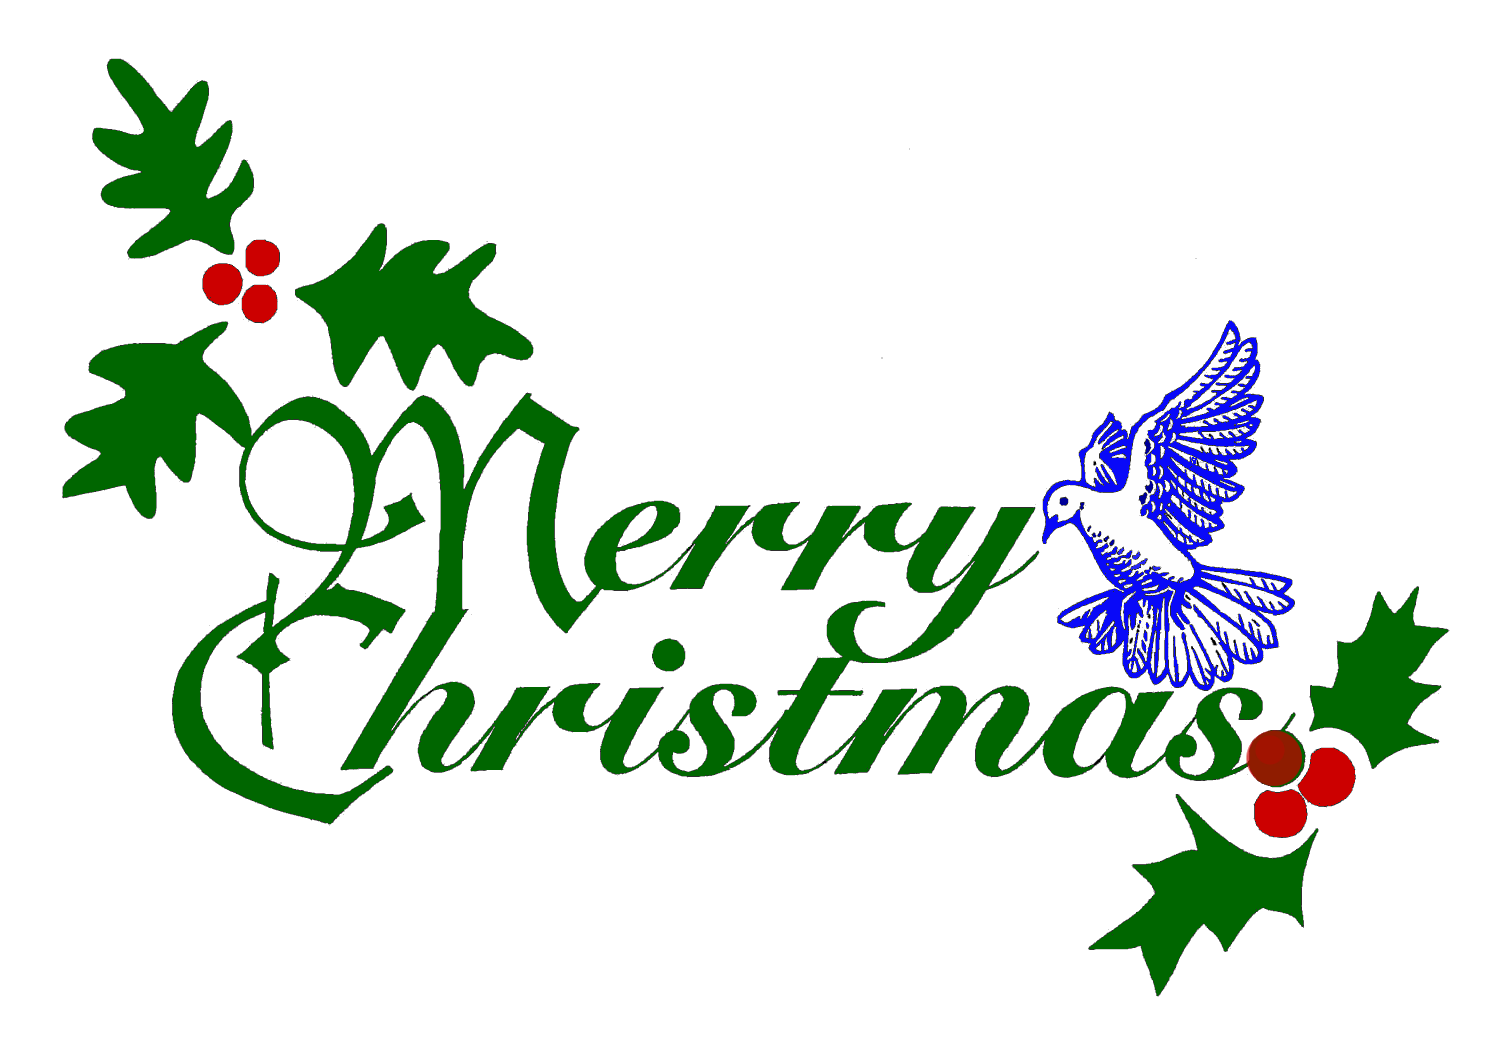 Merry christmas clipart vintage. Transparent png pictures free